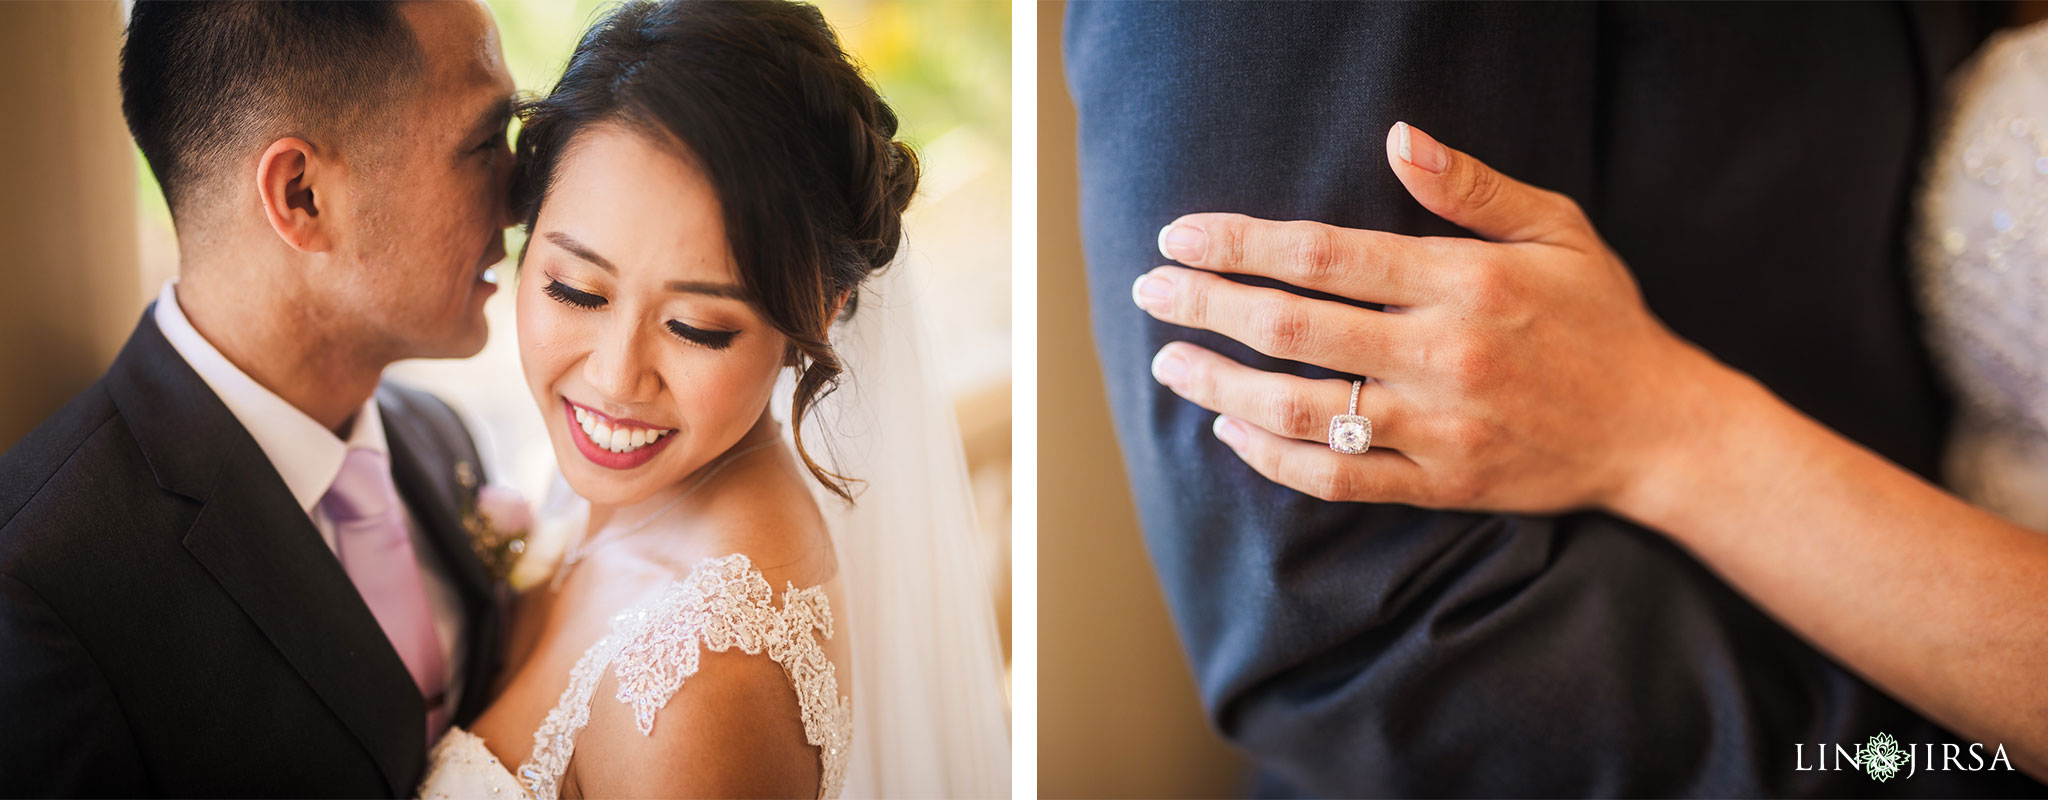 020 il palazzo mansion san clemente wedding photography